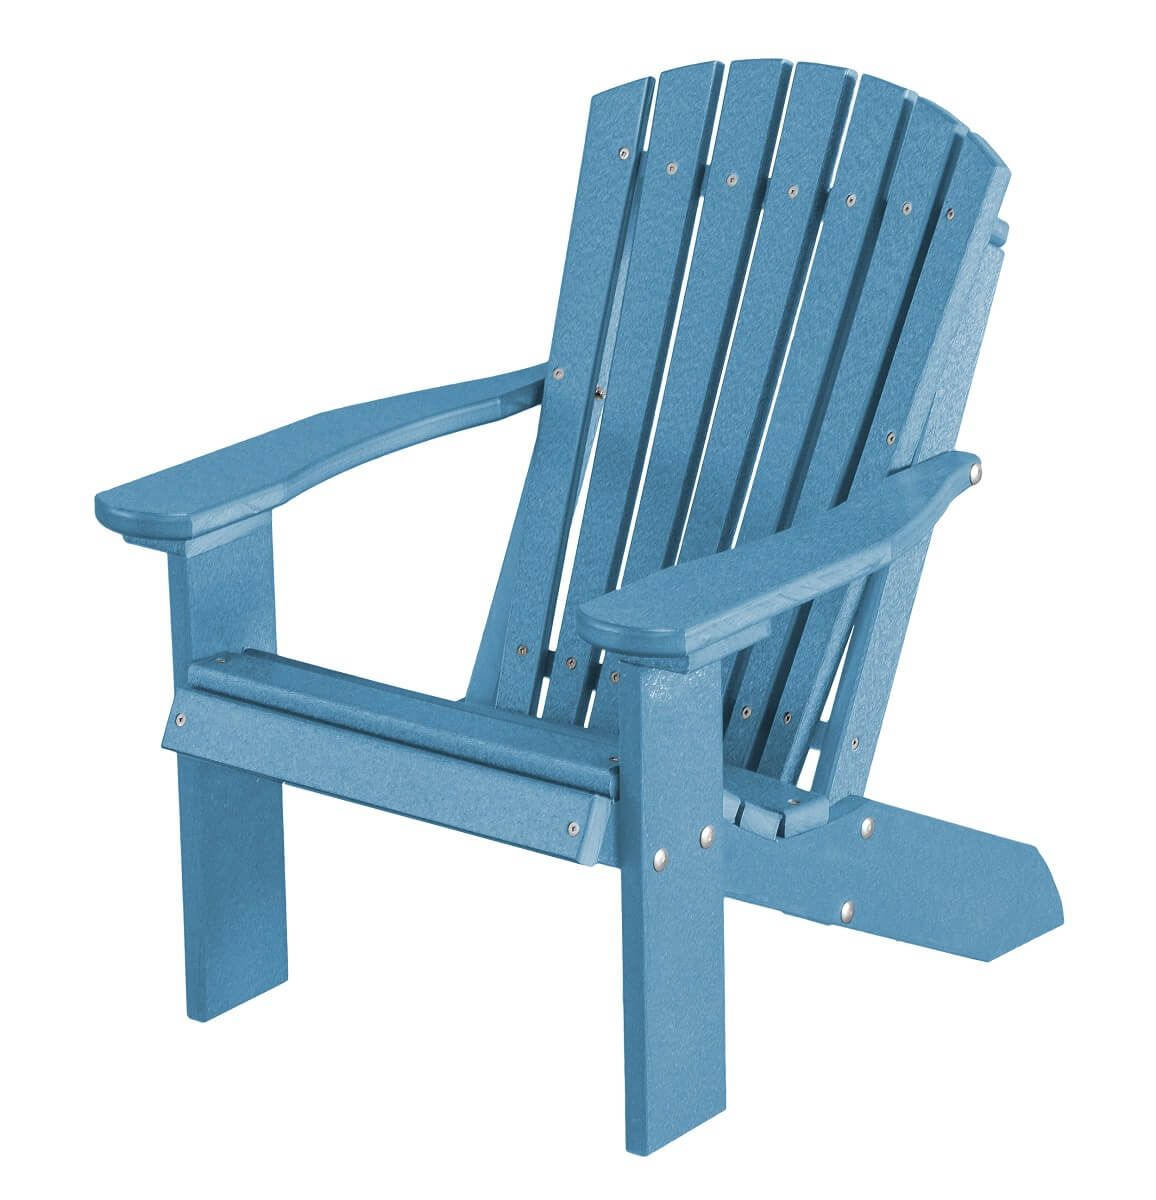 Powder Blue Sidra Child's Adirondack Chair